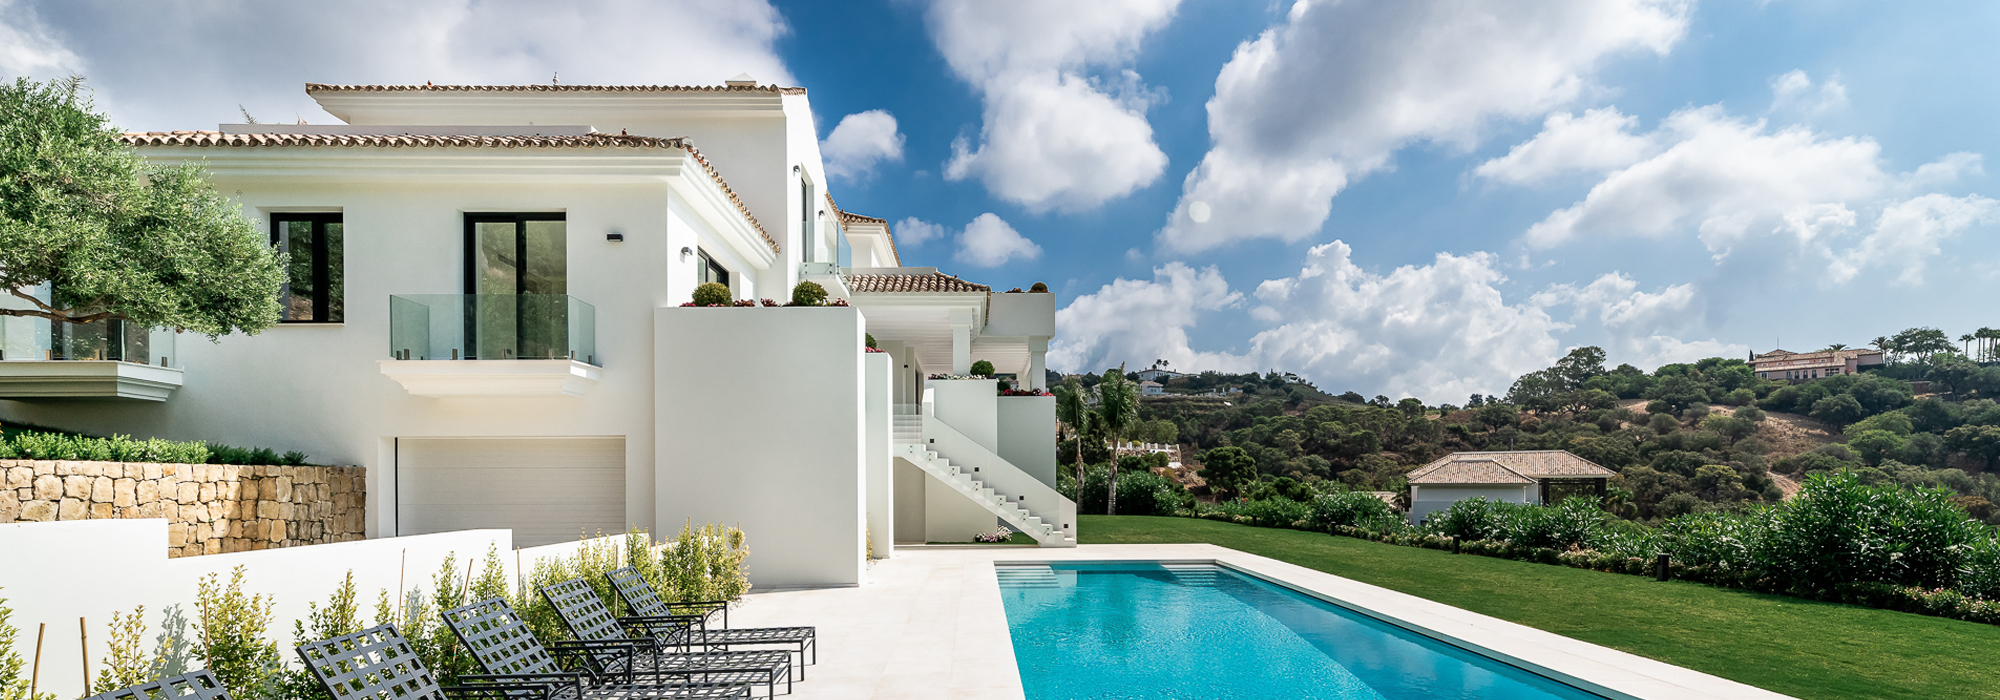 Charming New Luxury Villa in La Zagaleta